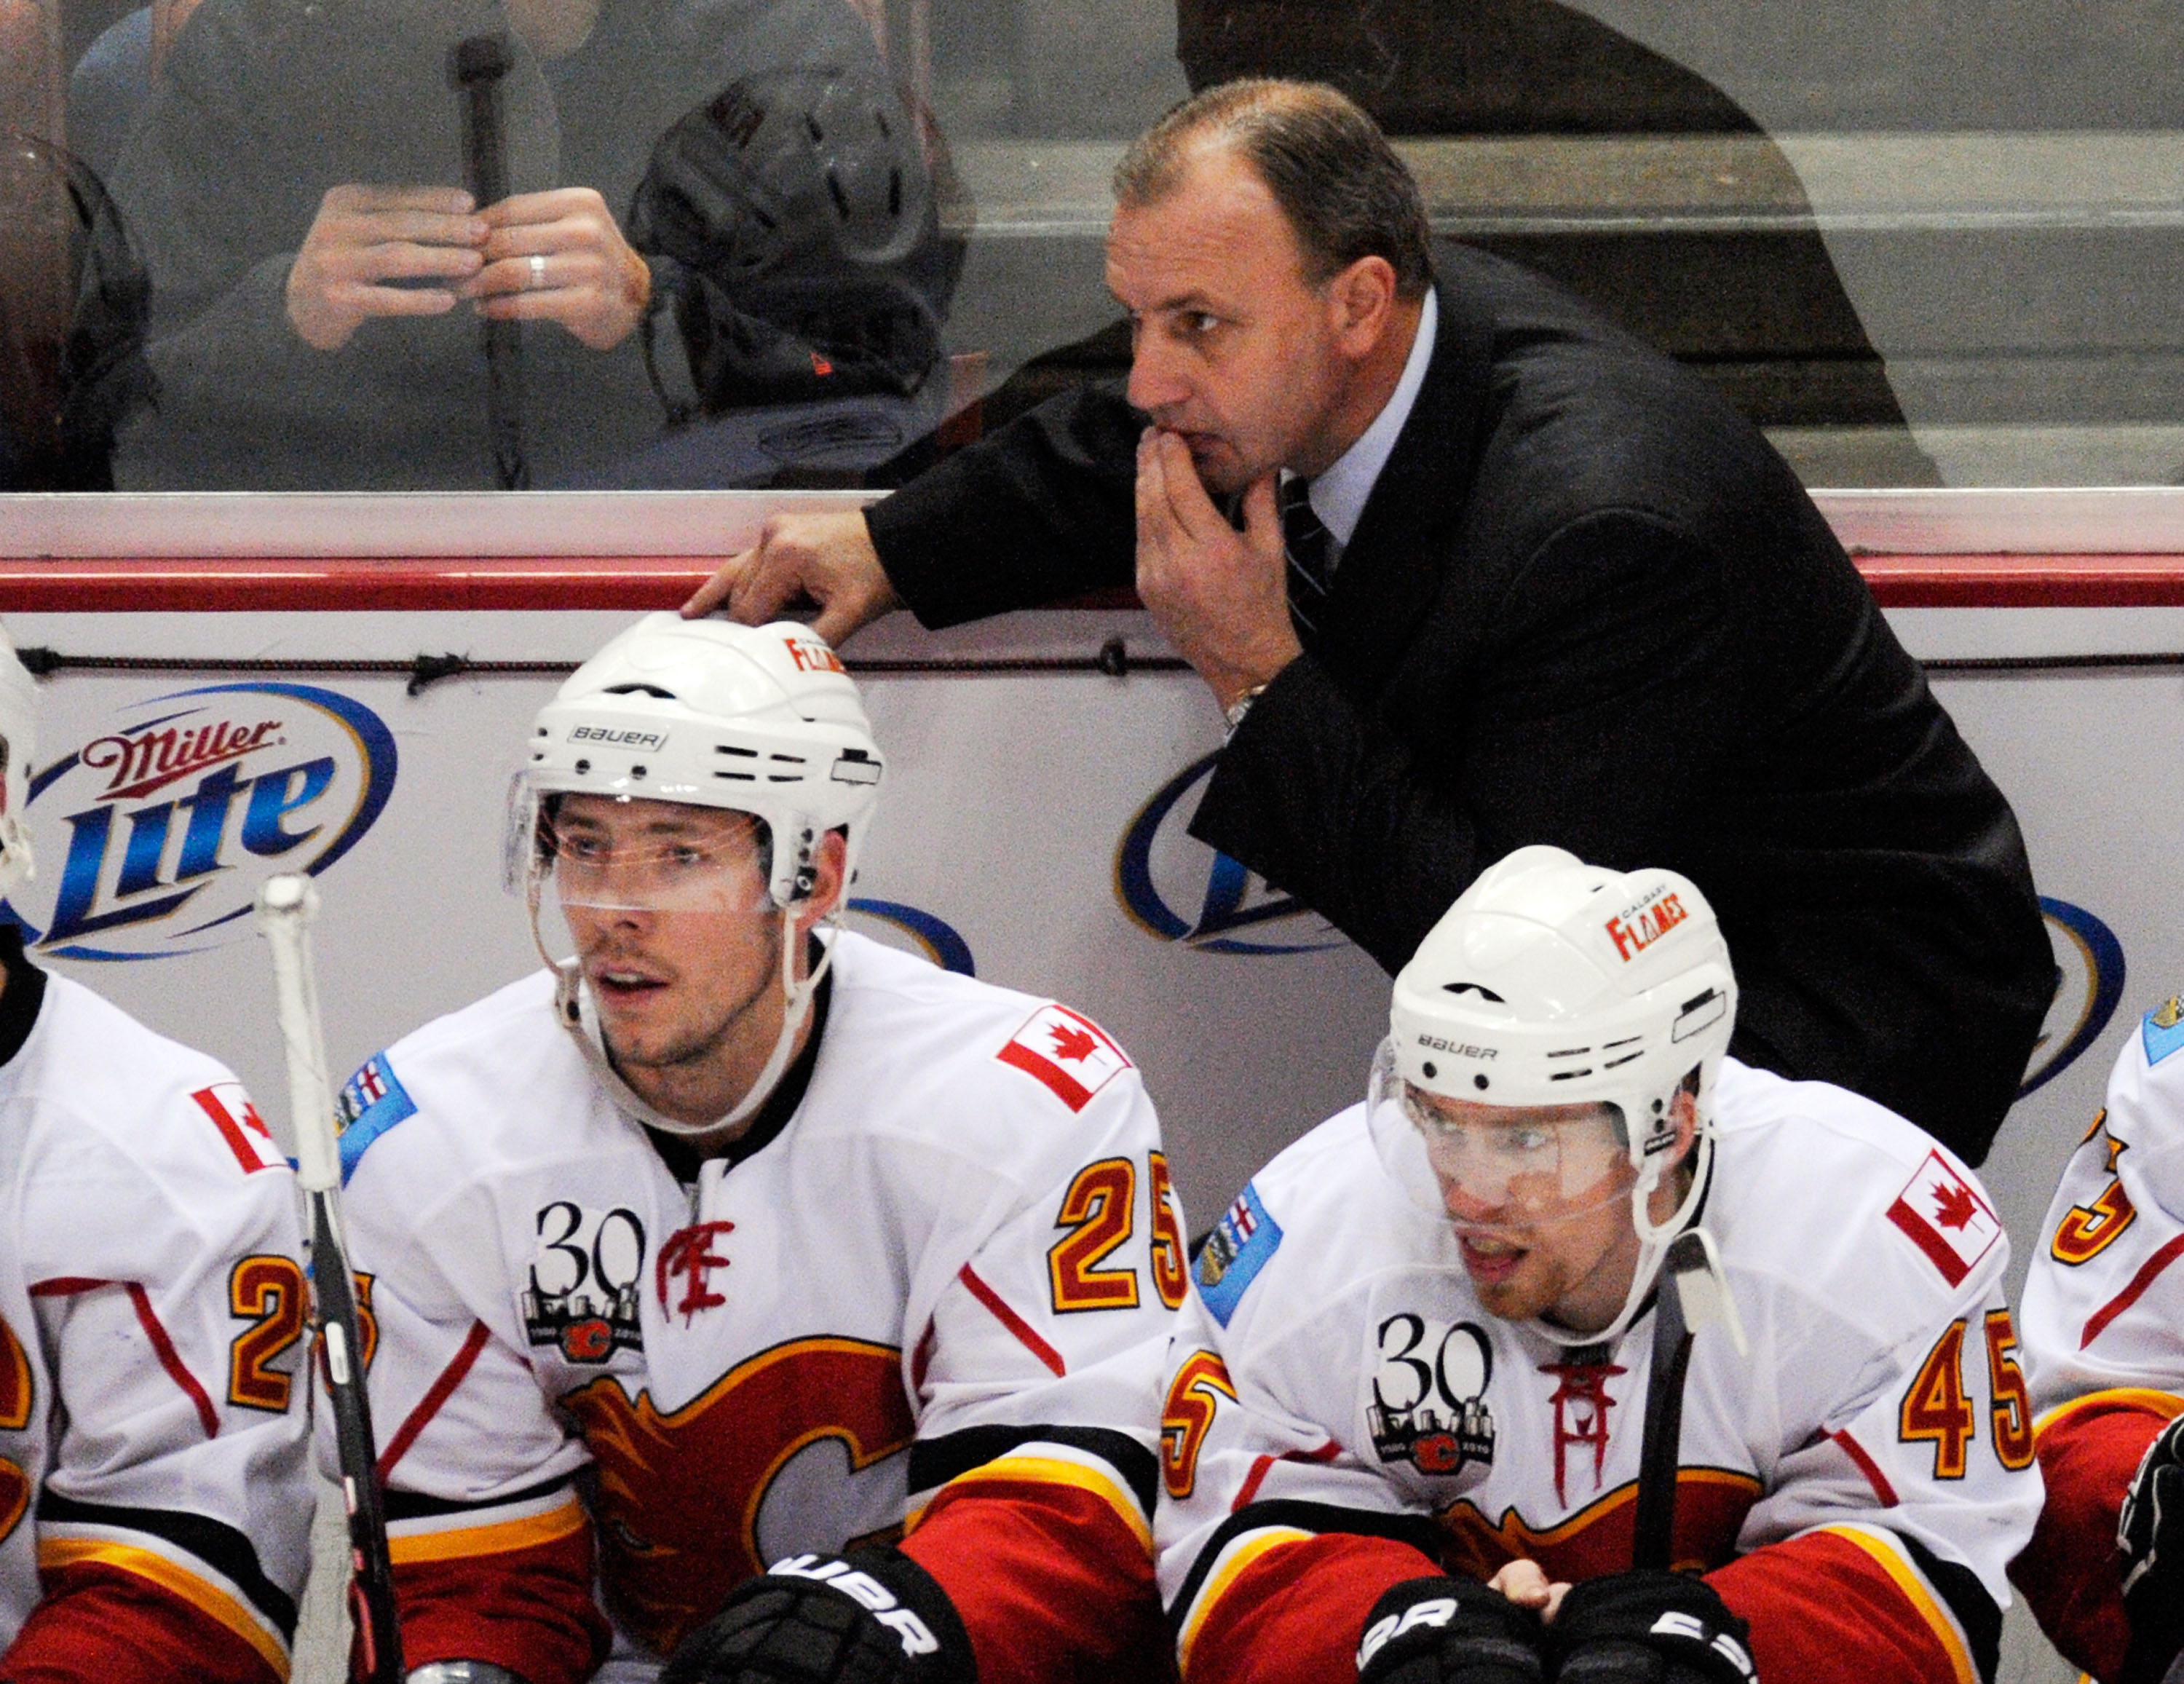 ANAHEIM, CA - NOVEMBER 23:  Brent Sutter head coach of the Calgary Flames during the NHL game against  Anaheim Ducks  at the Honda Center on November 23, 2009 in Anaheim, California.  (Photo by Kevork Djansezian/Getty Images)